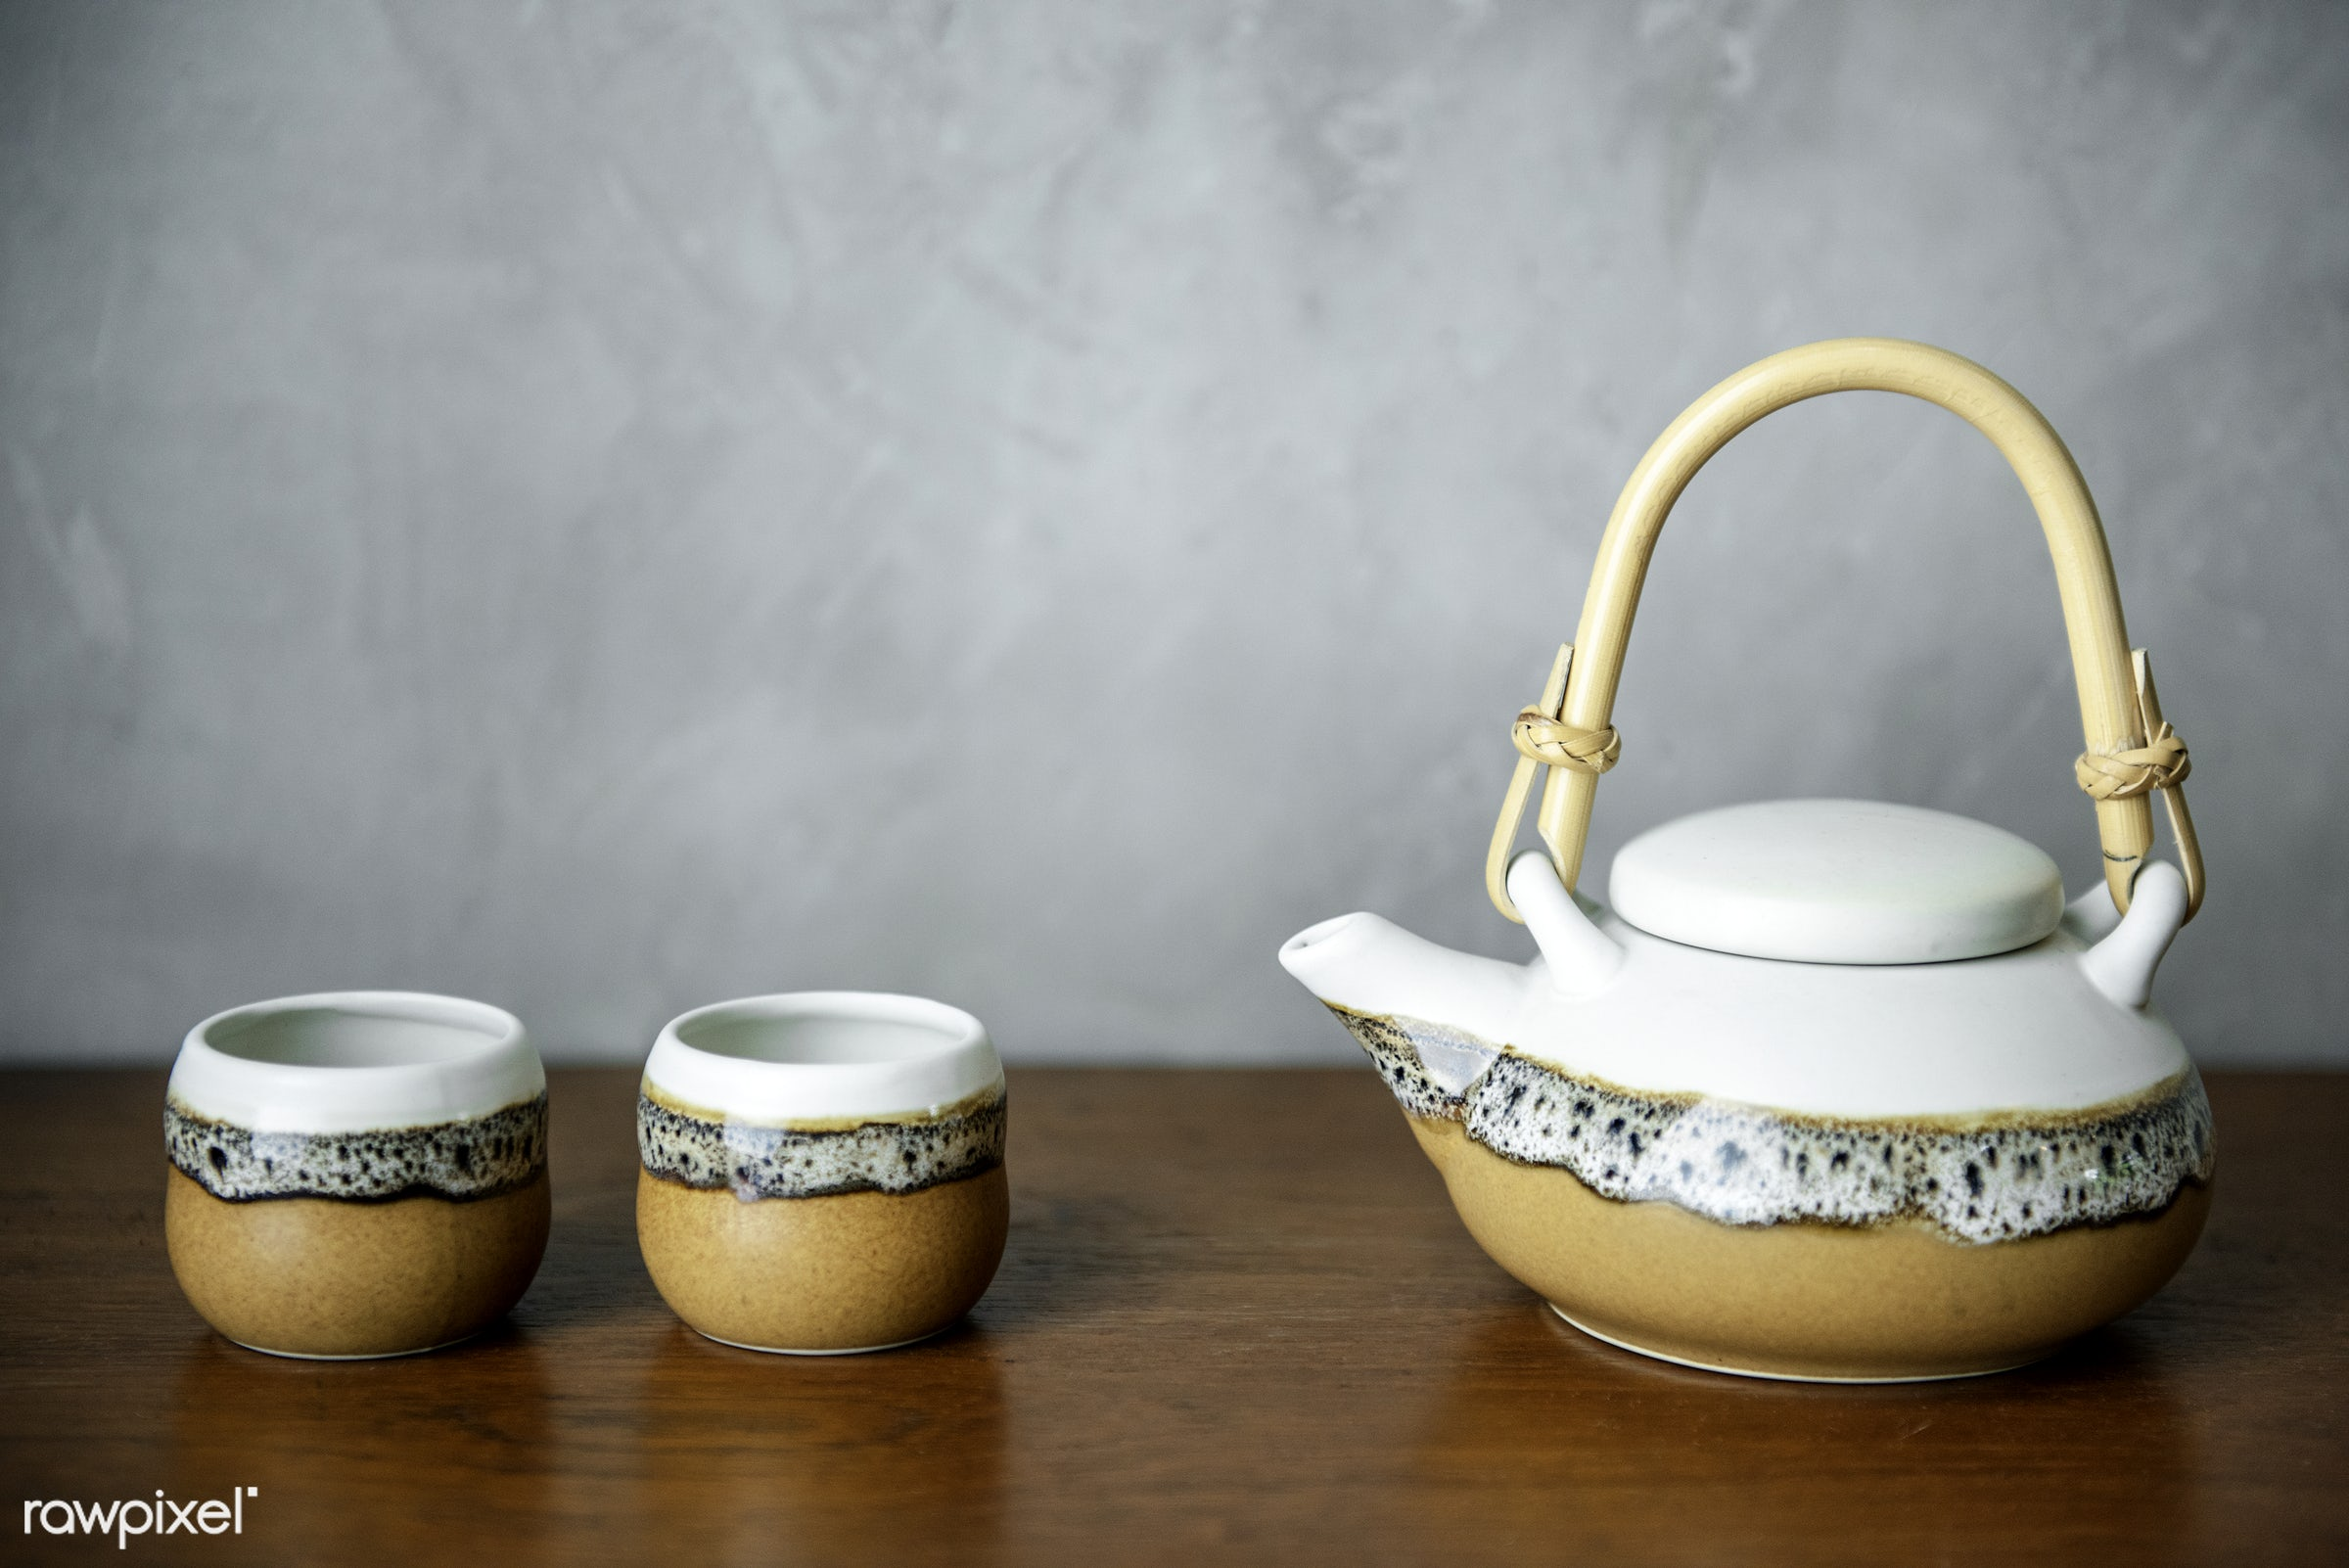 Japanese culture tea pot set - japan, japanese, asia, asian, beverage, ceremony, chinese, culture, drink, gourmet, healthy...